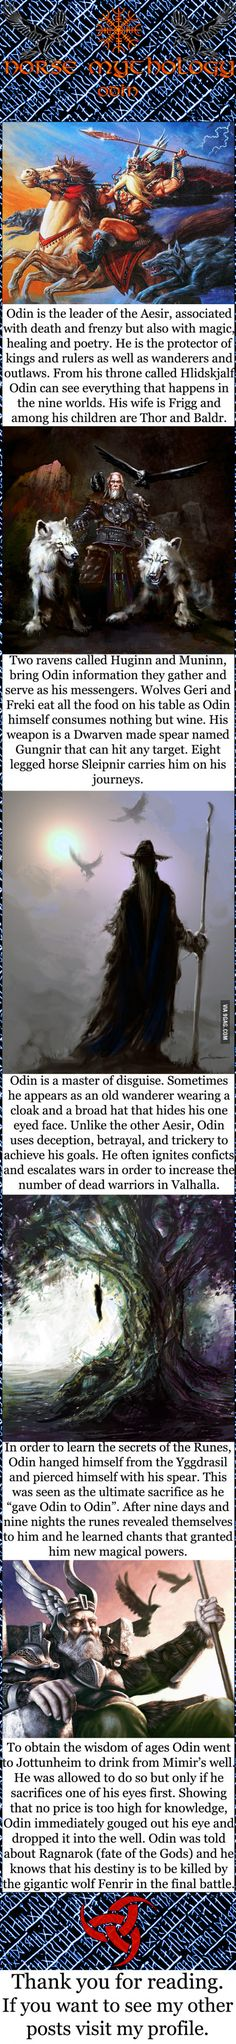 Norse mythology - Odin More